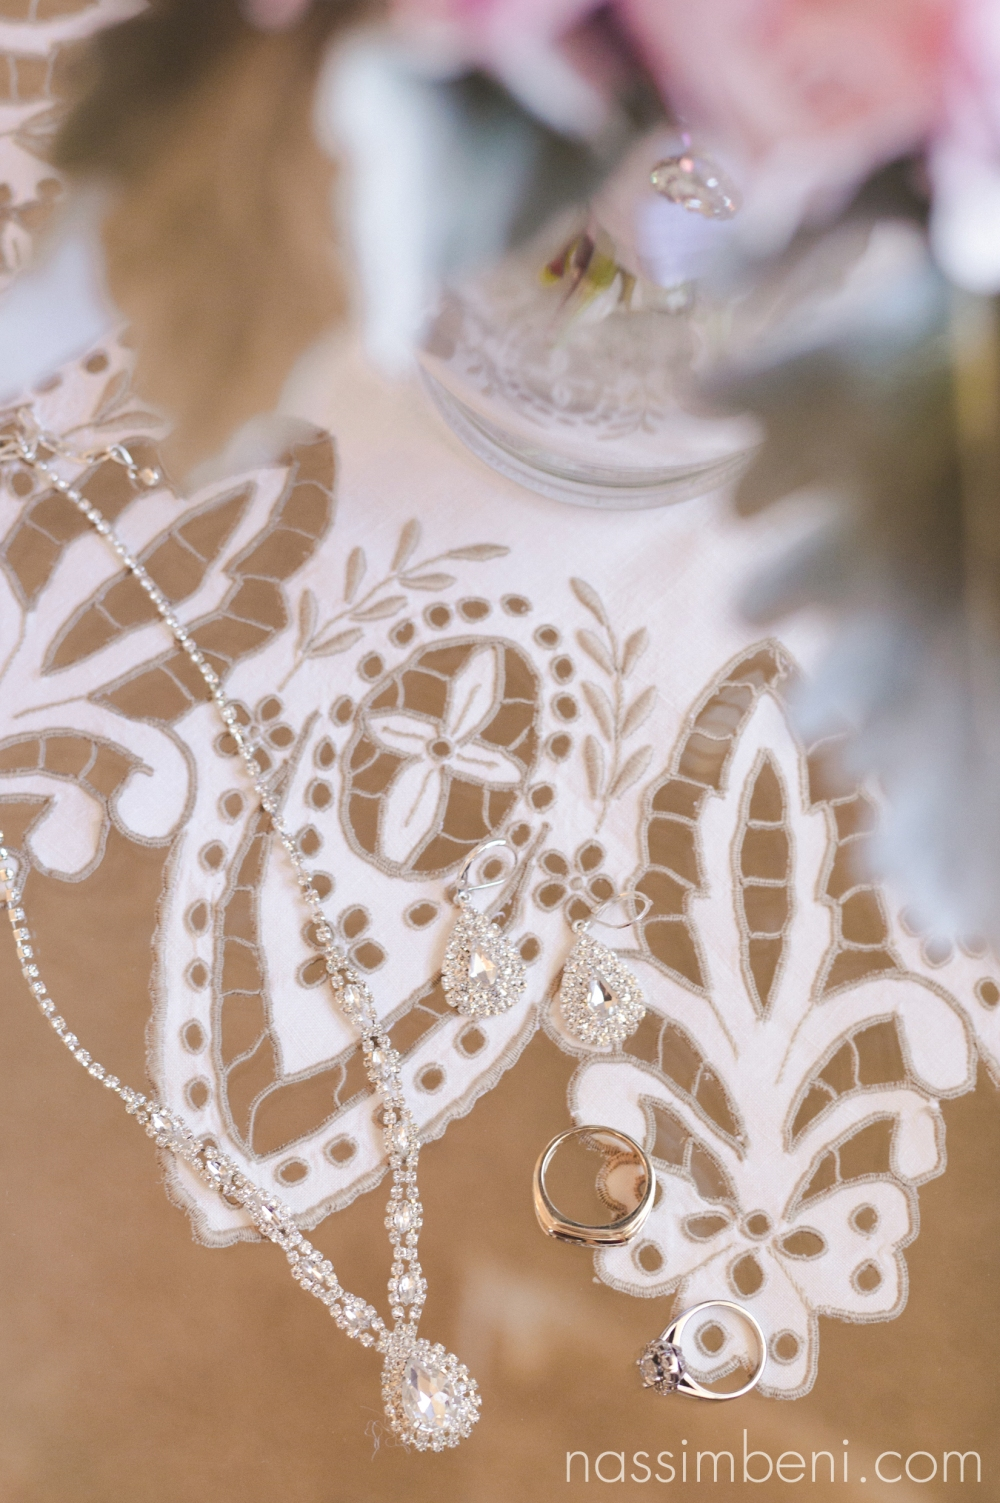 brides details and peonies bouquet by port st lucie wedding photographer nassimbeni photography